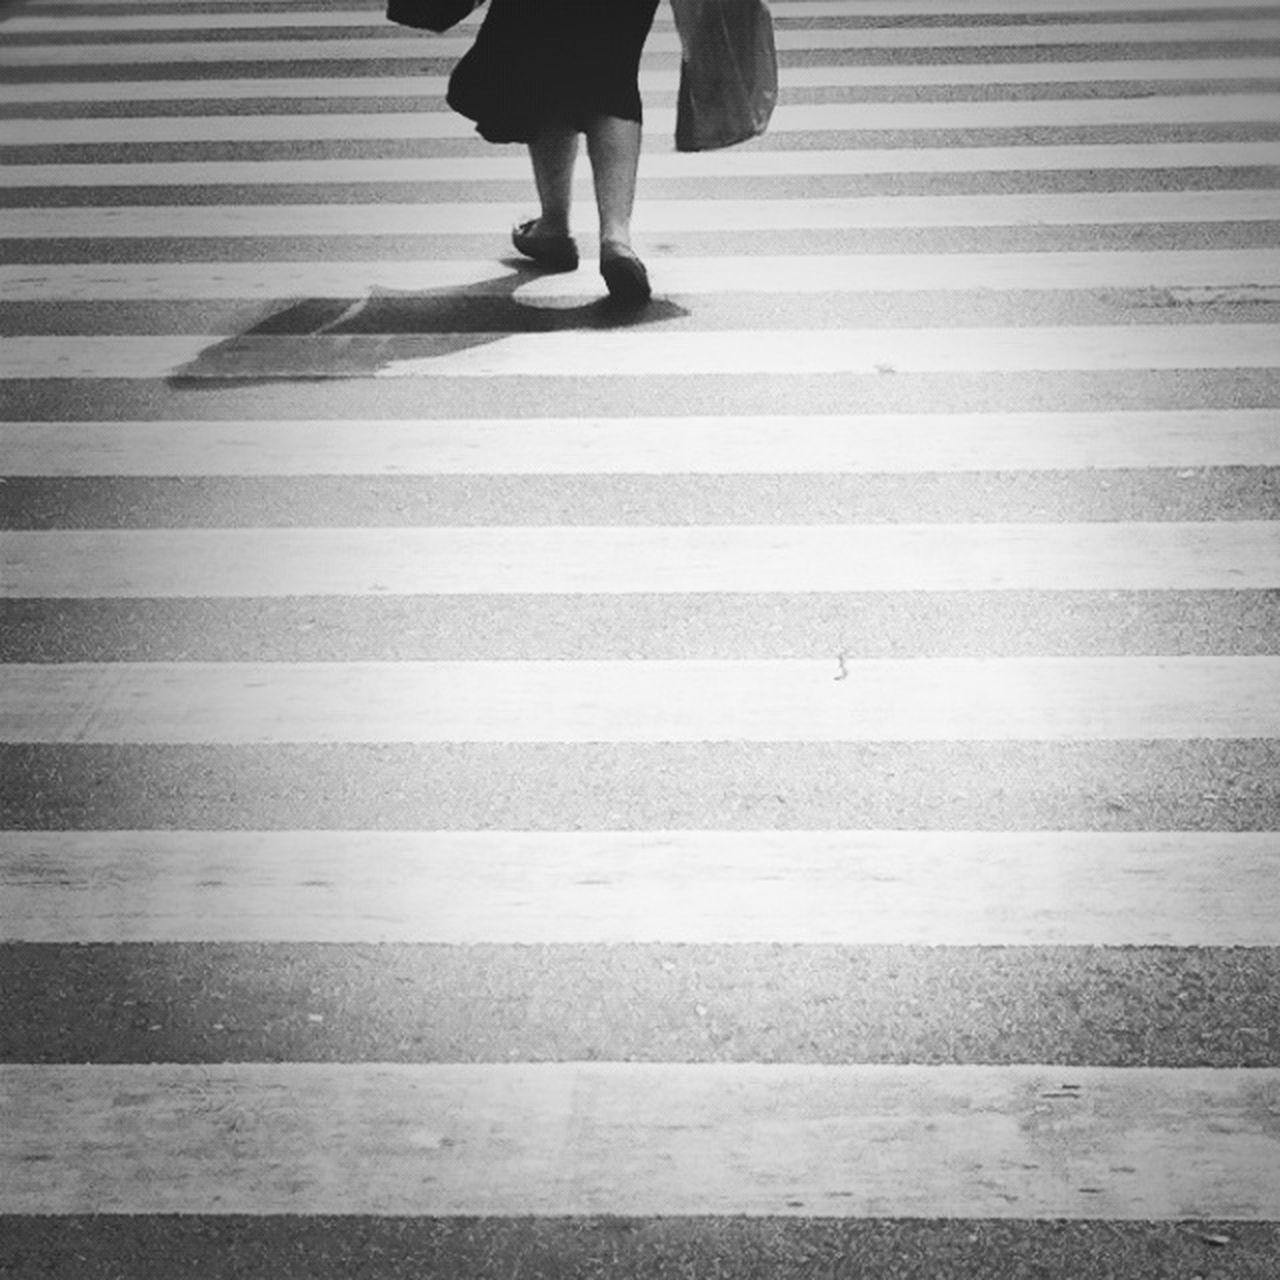 zebra crossing, low section, human leg, walking, striped, road marking, crossing, human foot, transportation, one person, street, real people, pedestrian, rear view, road, white line, women, city life, lifestyles, human body part, standing, day, city, outdoors, adult, people, adults only